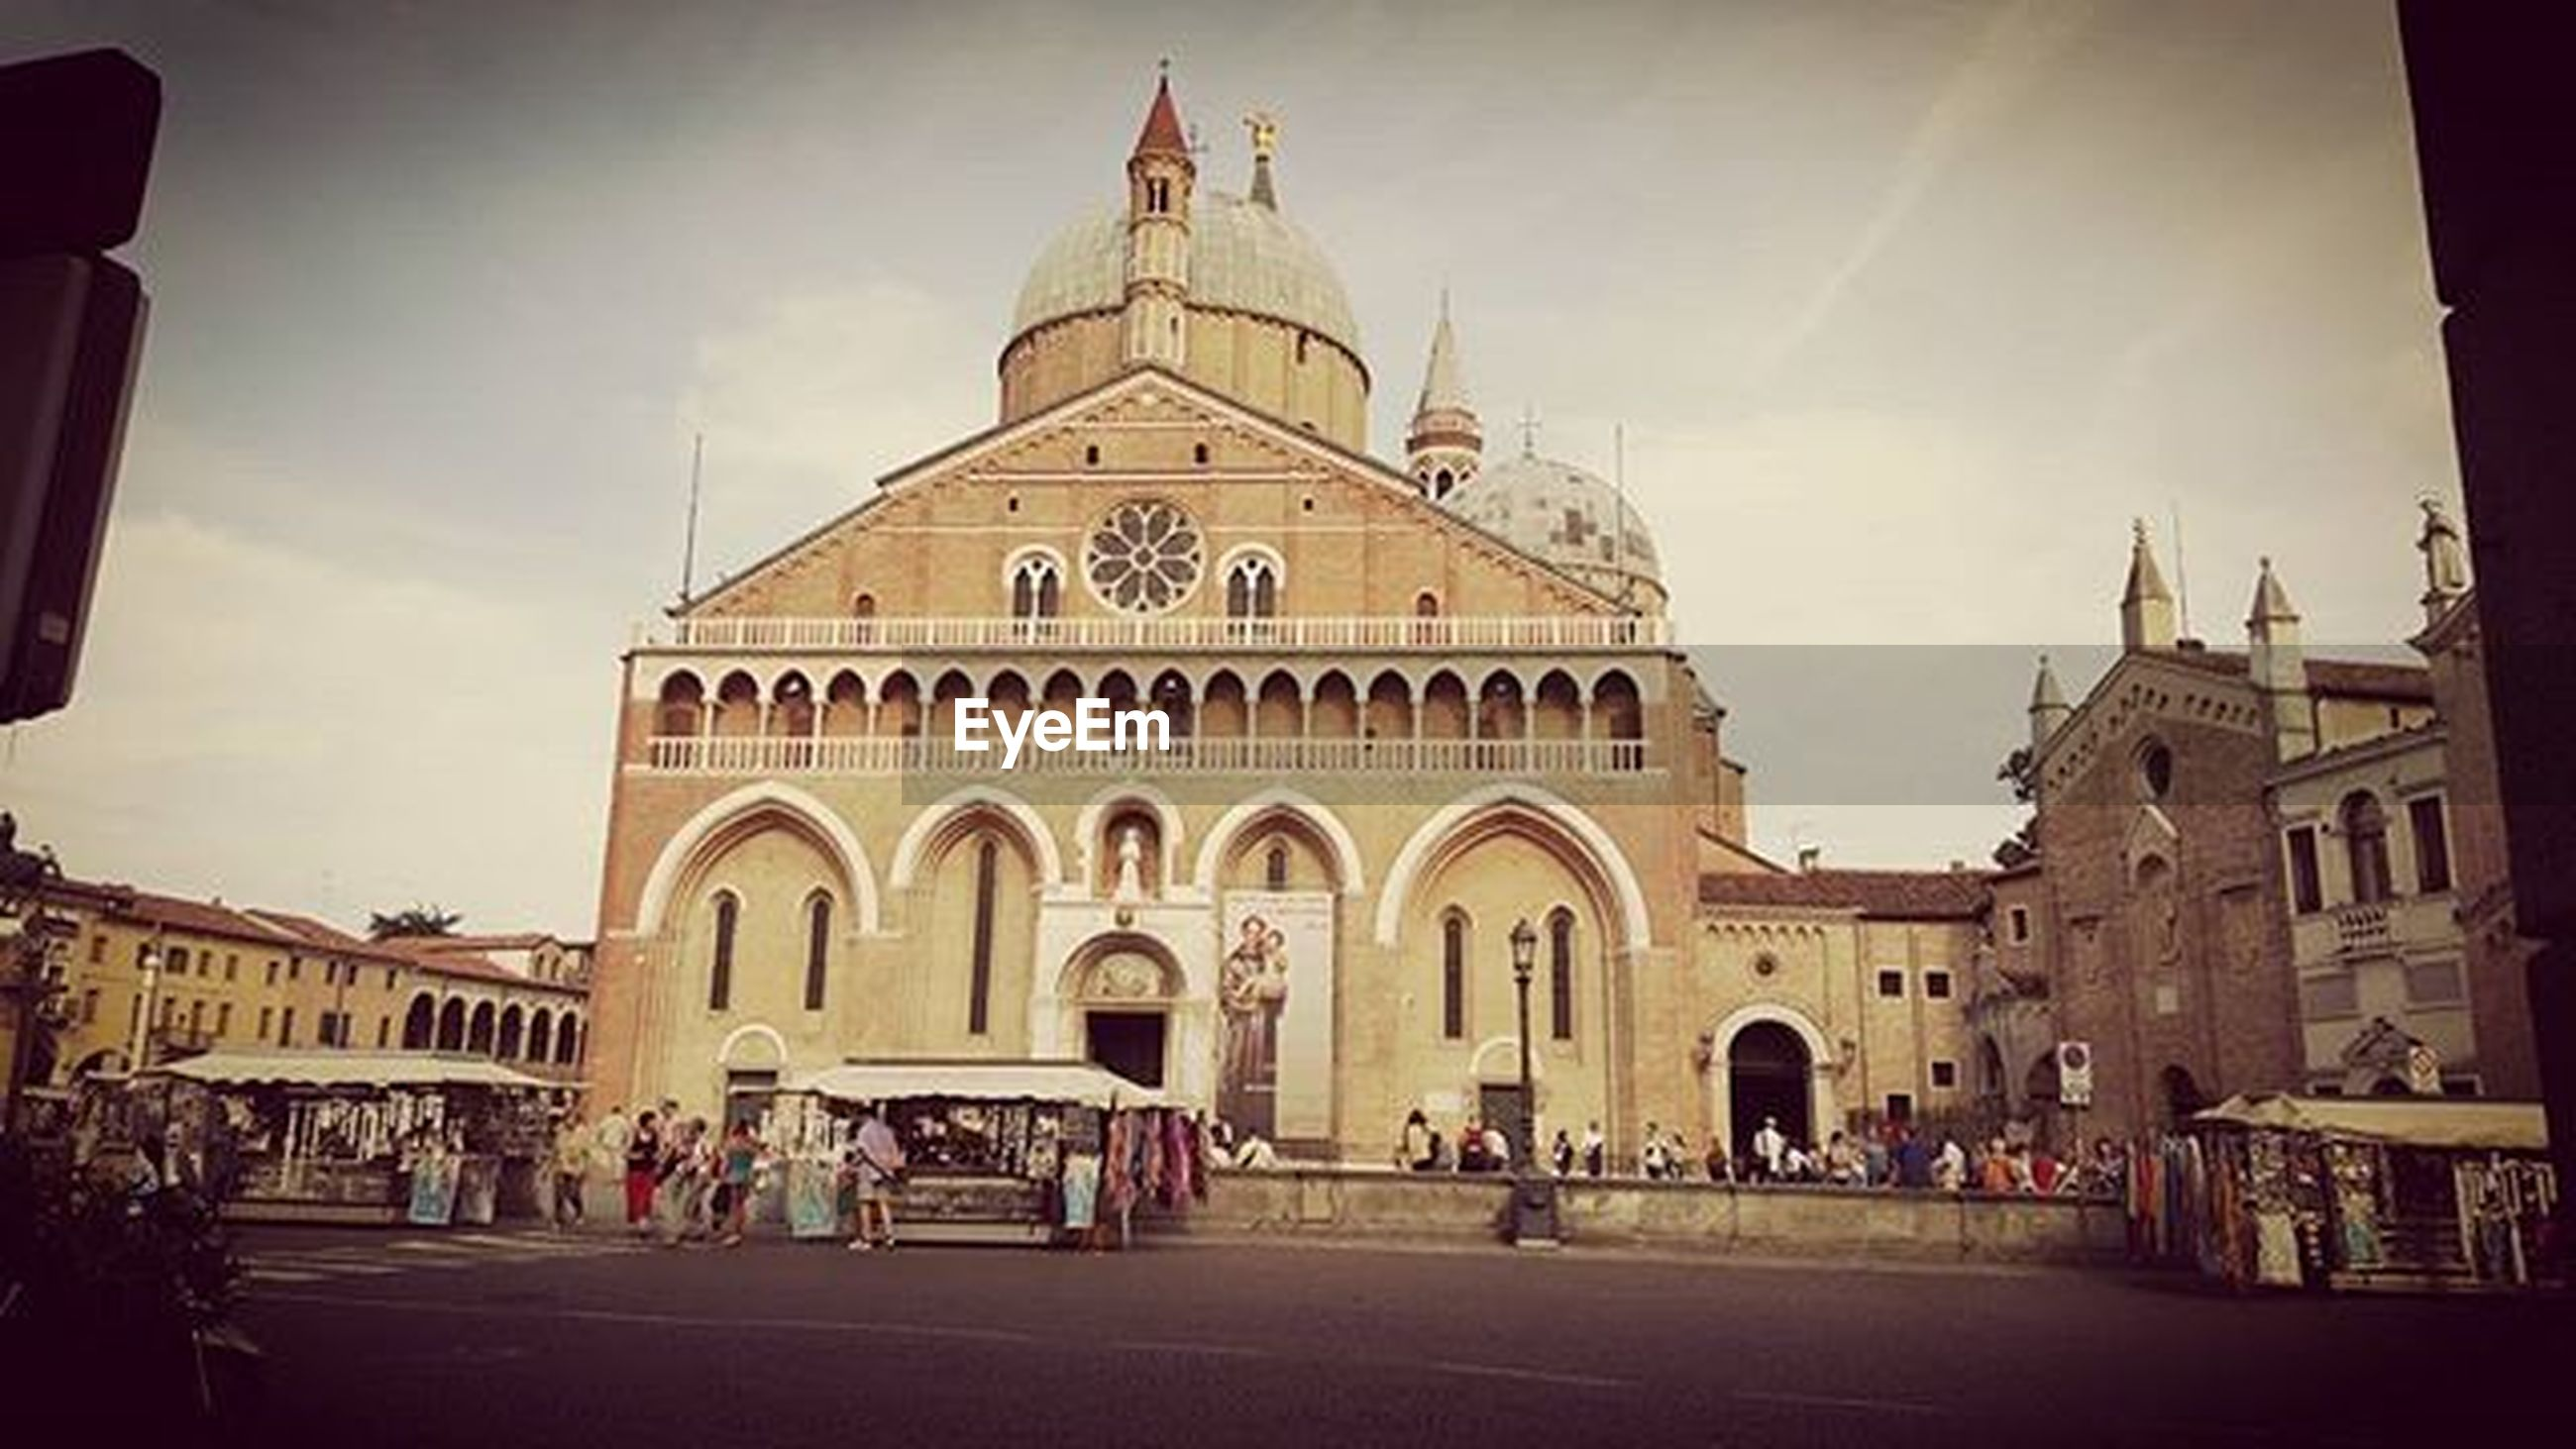 architecture, building exterior, place of worship, religion, built structure, spirituality, church, cathedral, famous place, facade, travel destinations, sky, tourism, travel, dome, large group of people, history